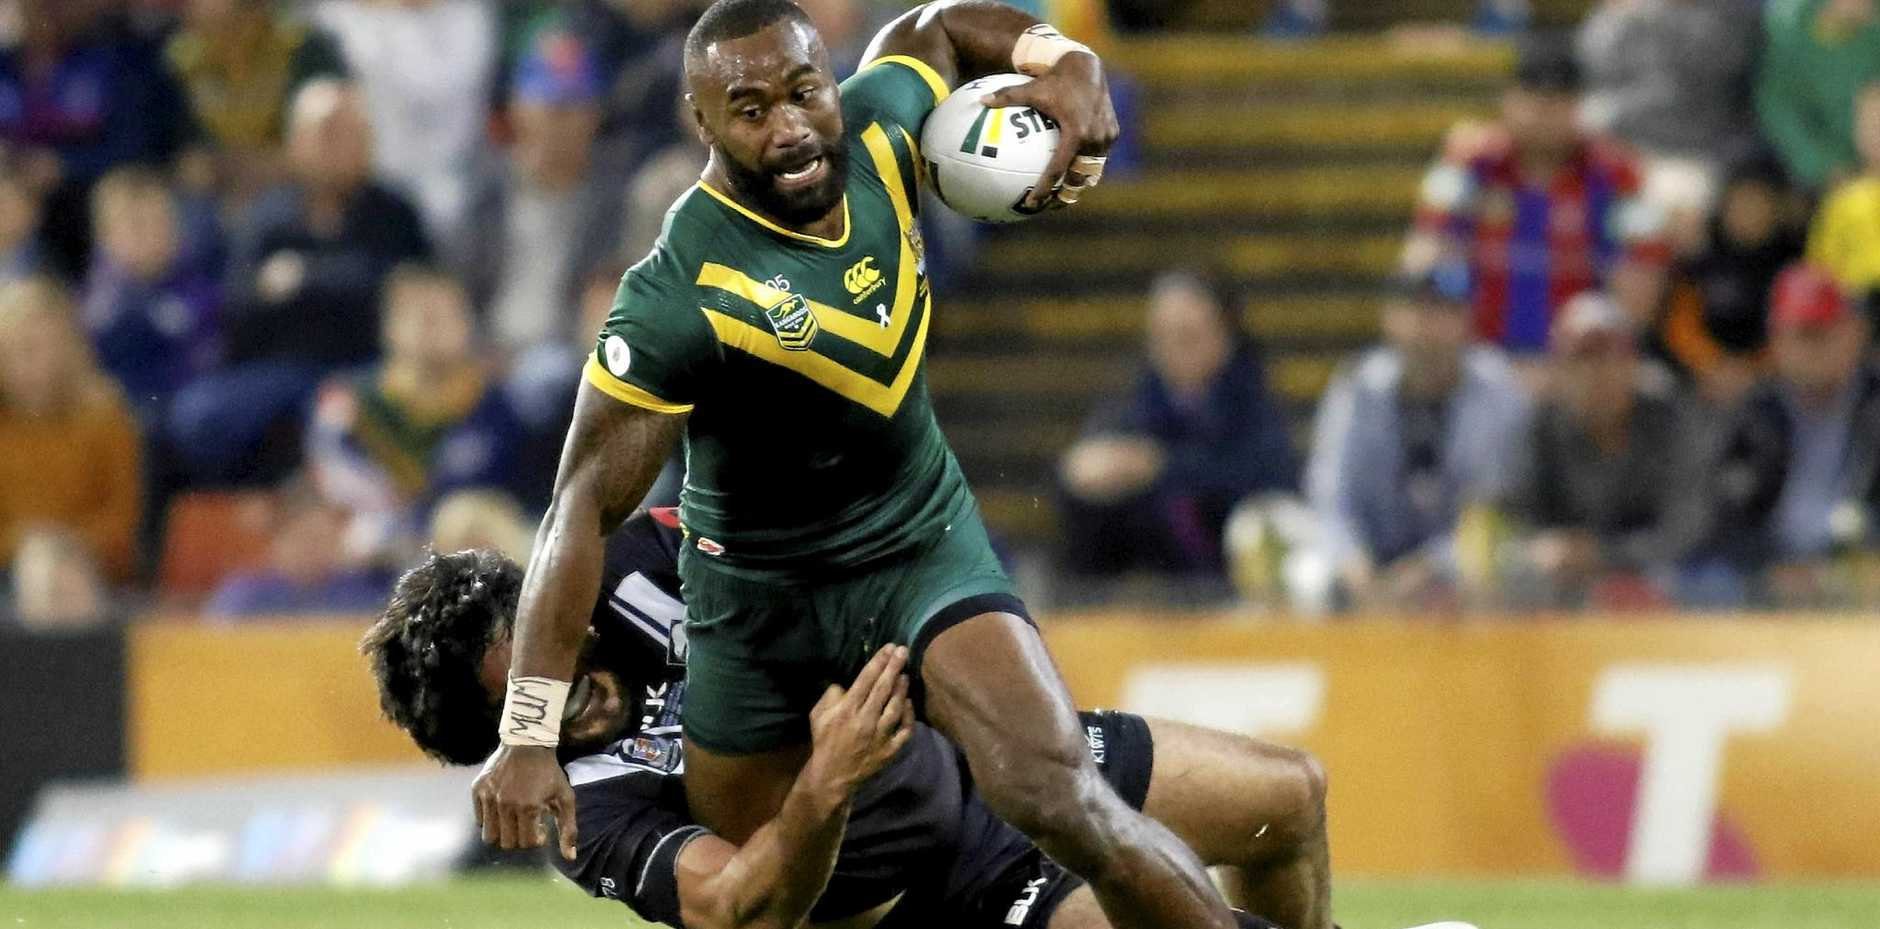 Eels winger Semi Radradra in action for the Kangaroos against New Zealand in May.